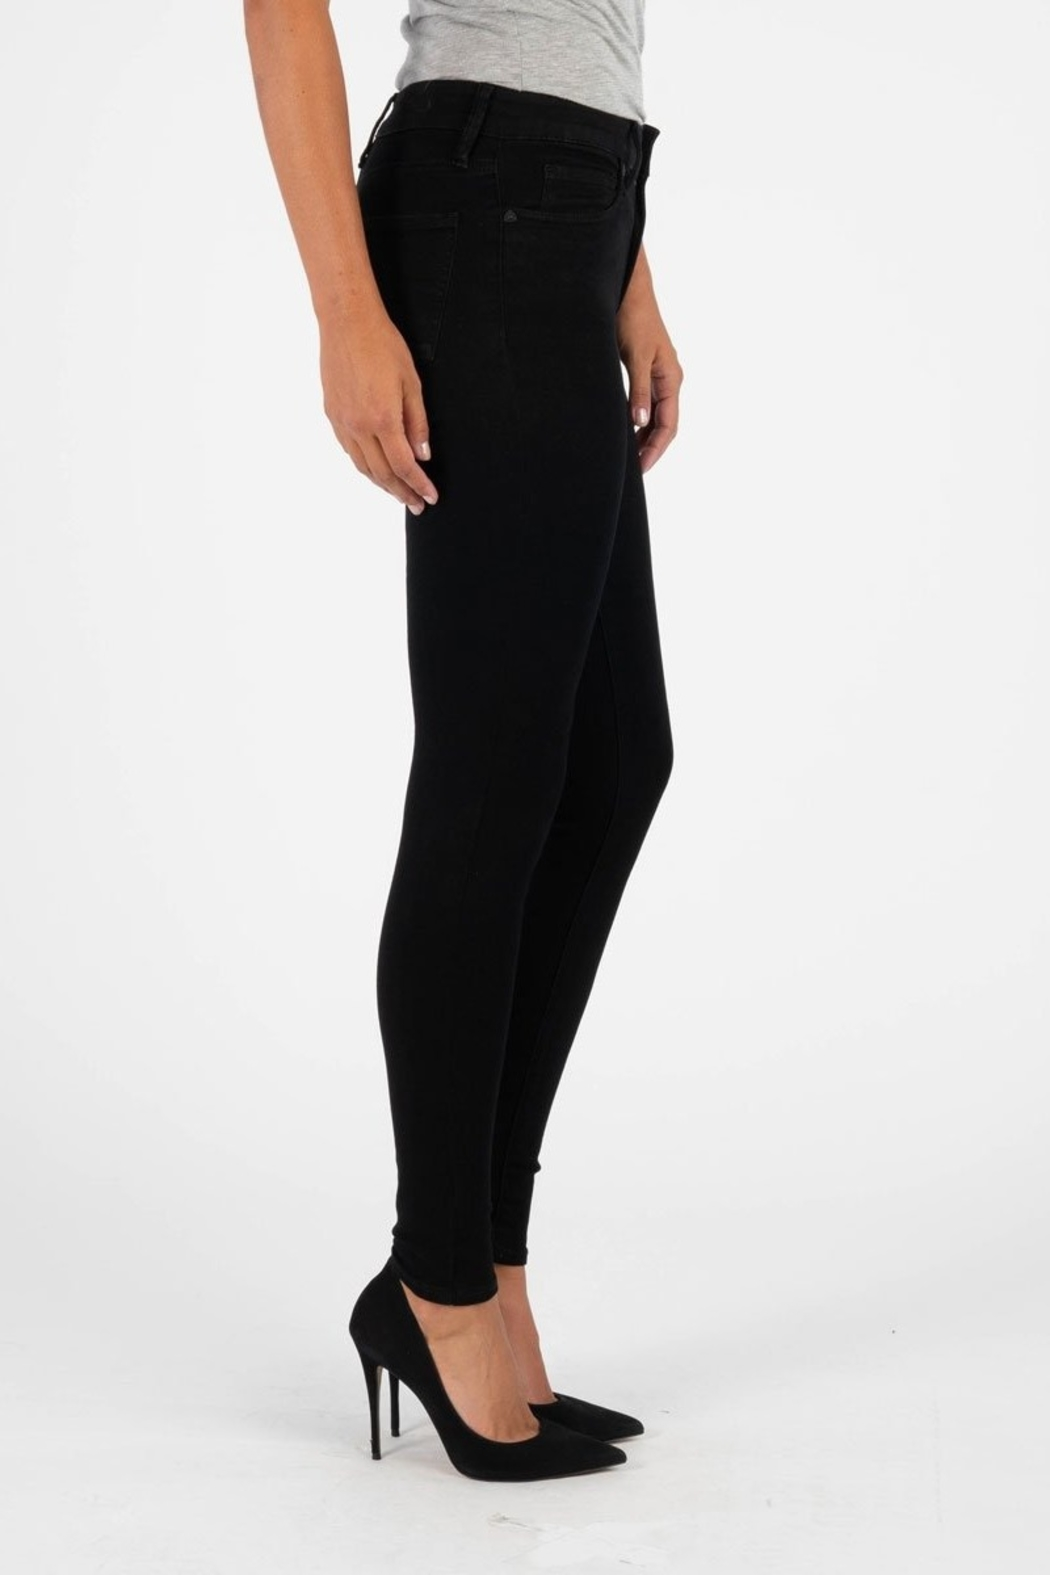 Kut from the Kloth MIA HIGHRISE SKINNY - Front Full Image